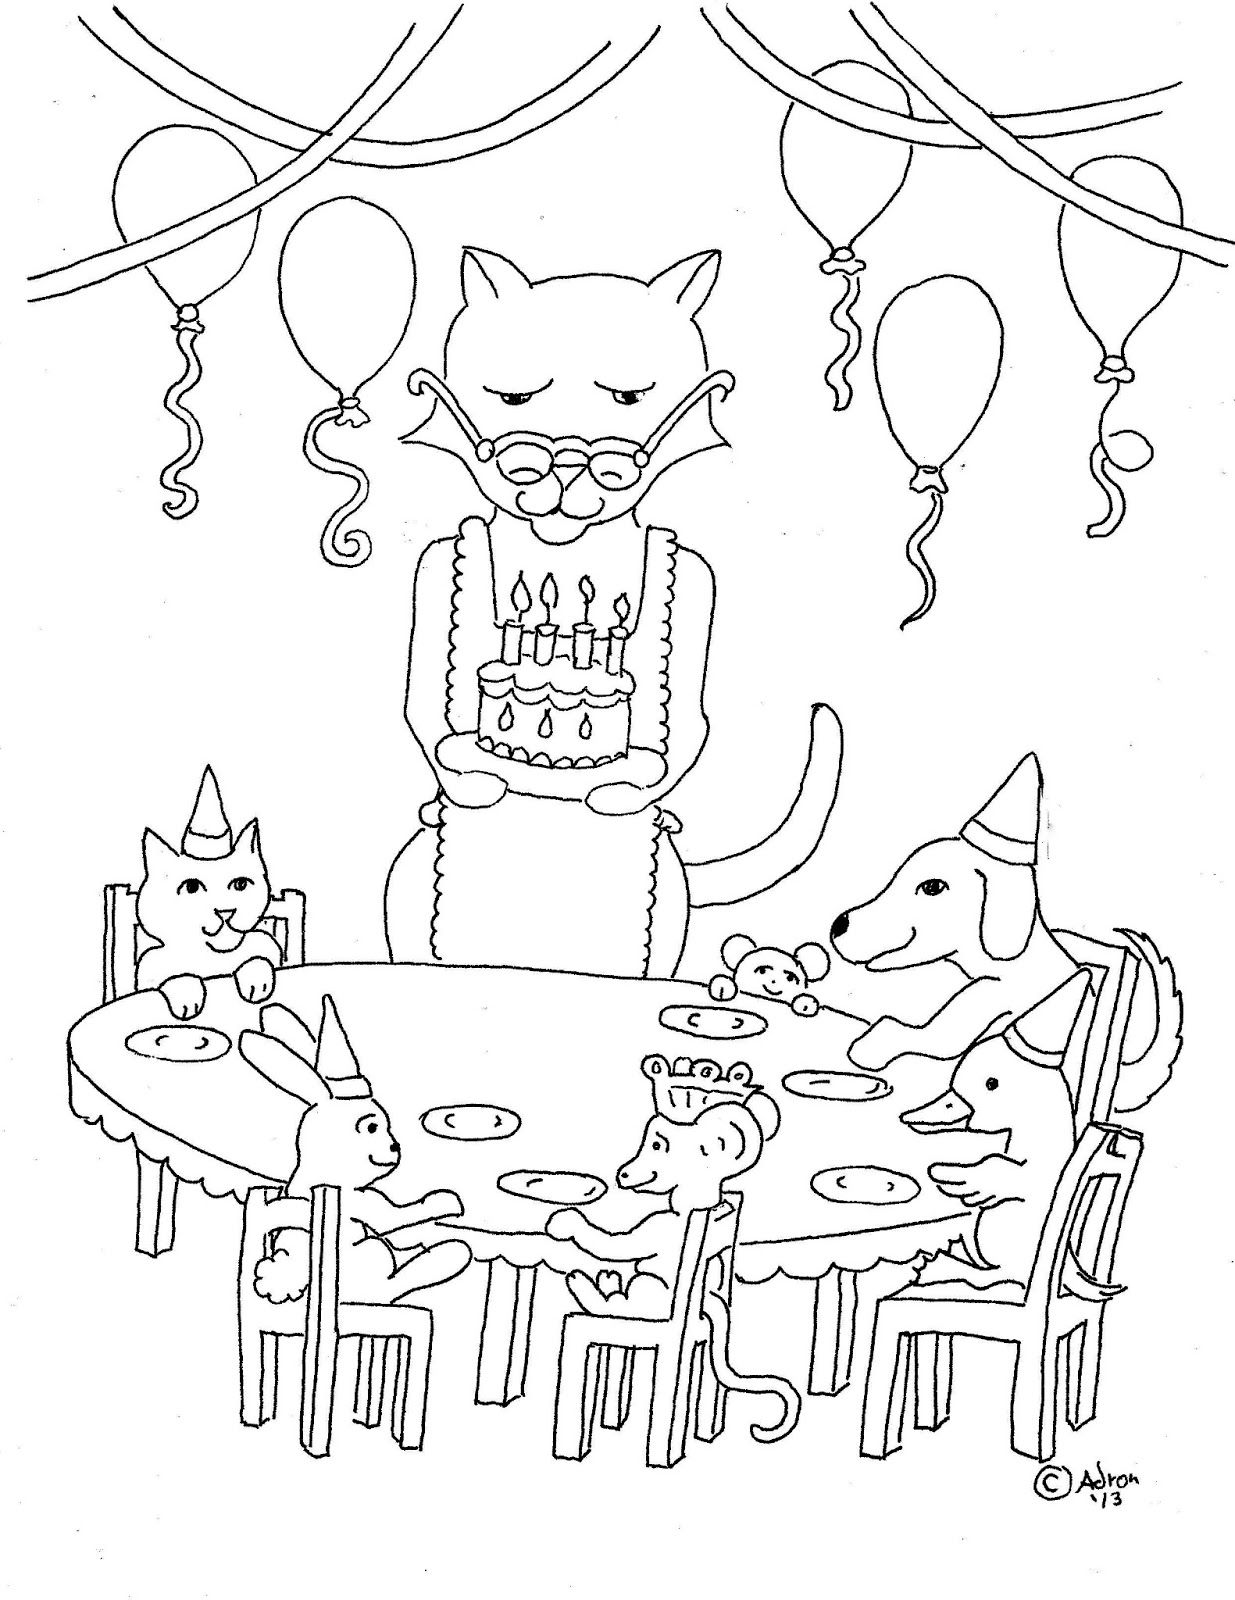 Birthday Party Coloring Pages - NetArt | 1600x1235